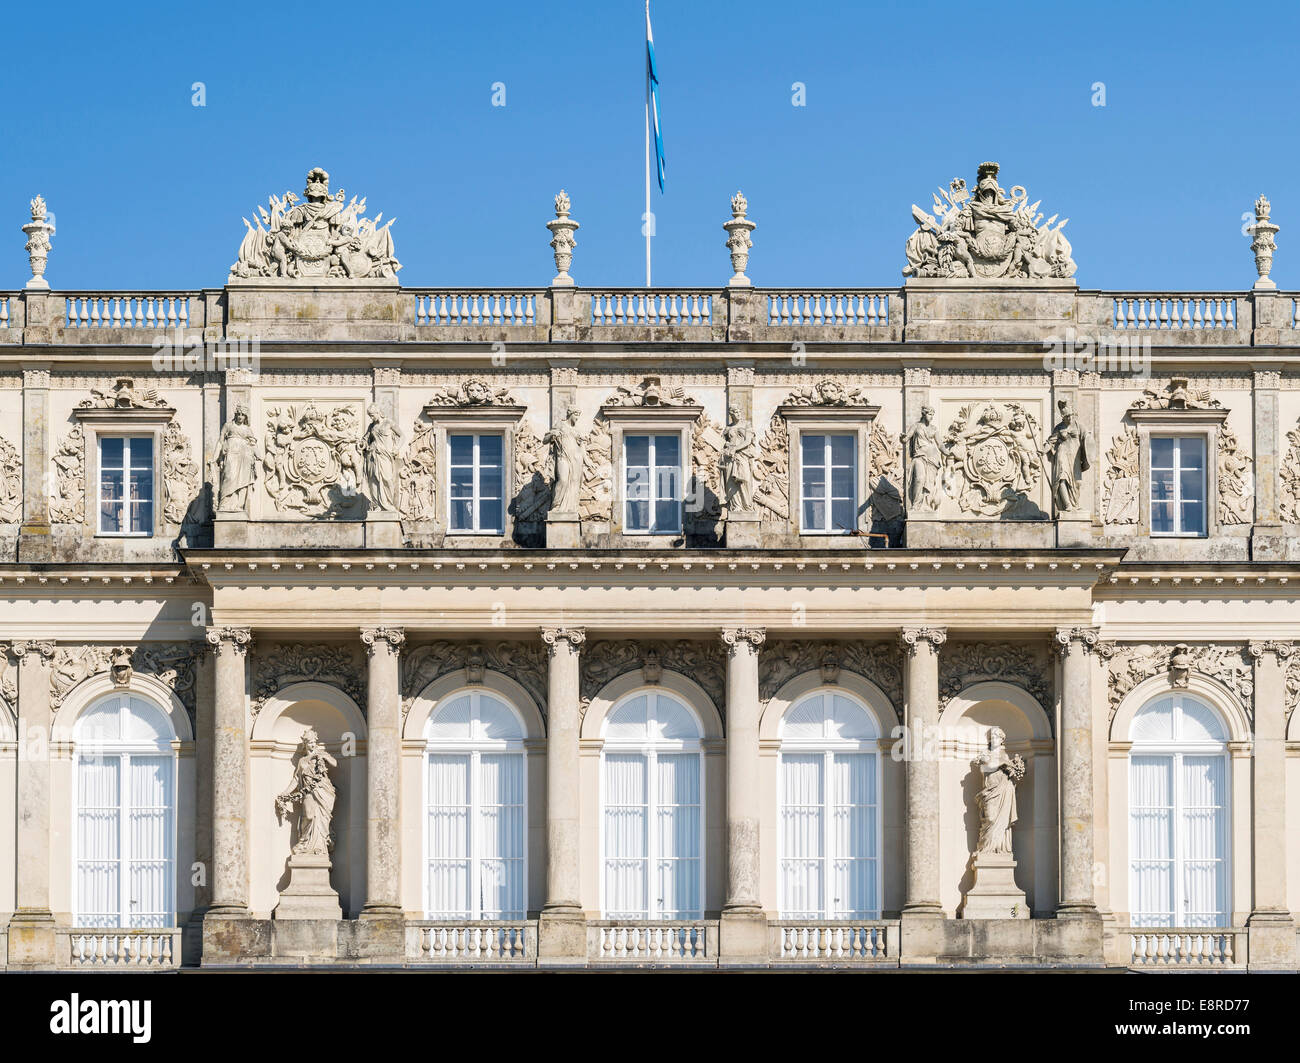 The western facade (Gartenfassade) of Herrenchiemsee Palace, located on an island in lake Chiemsee, Bavaria, Germany. - Stock Image